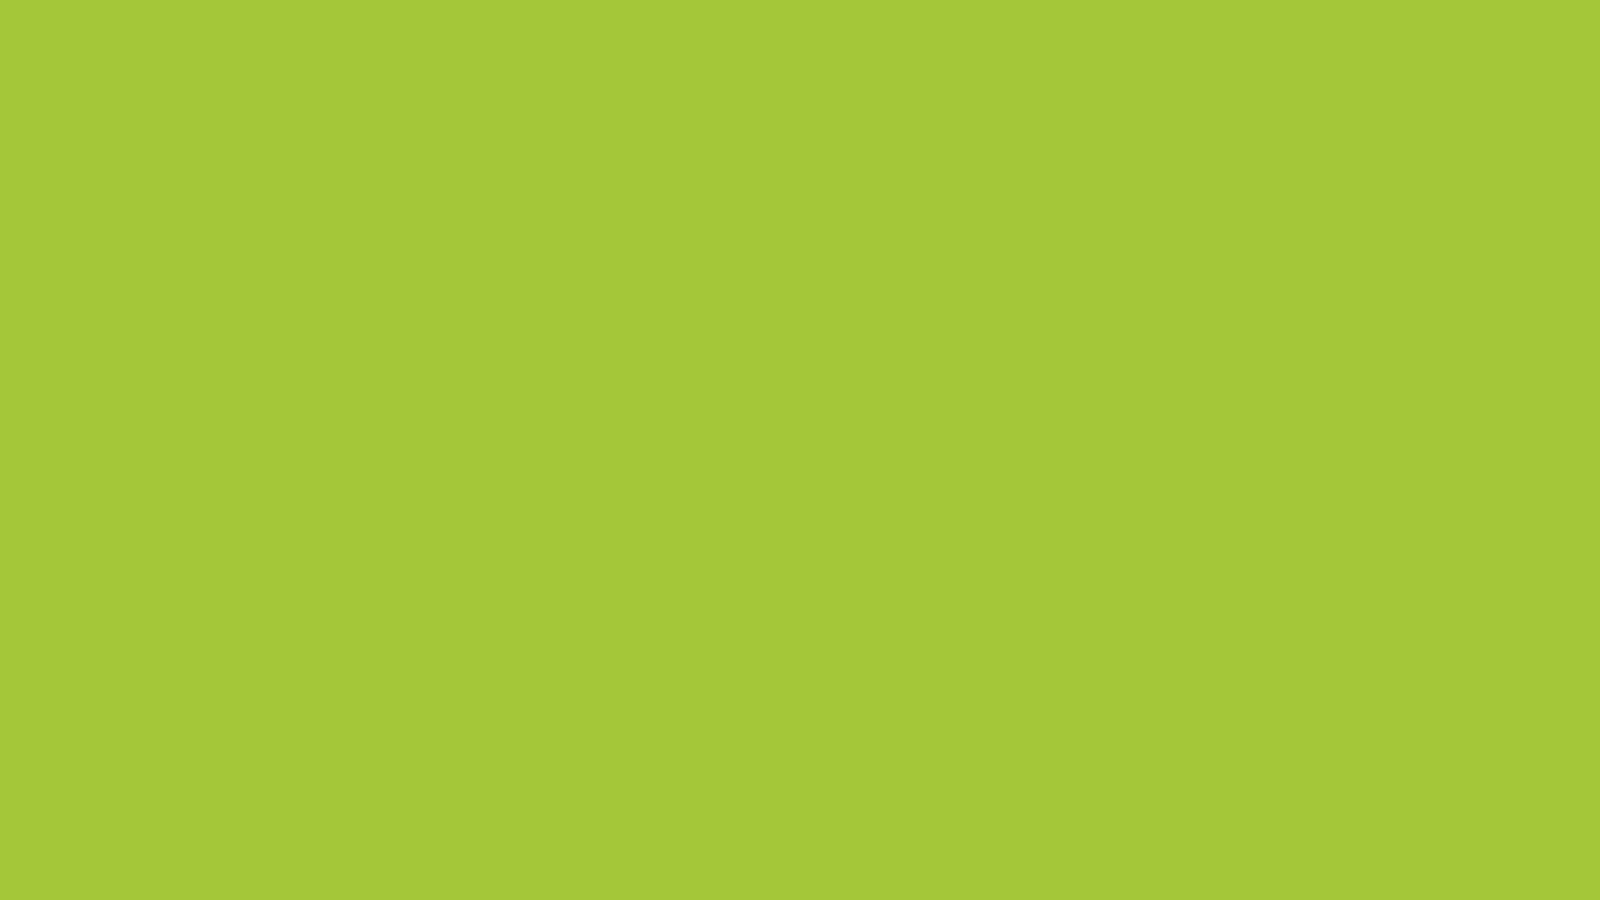 1600x900 Android Green Solid Color Background